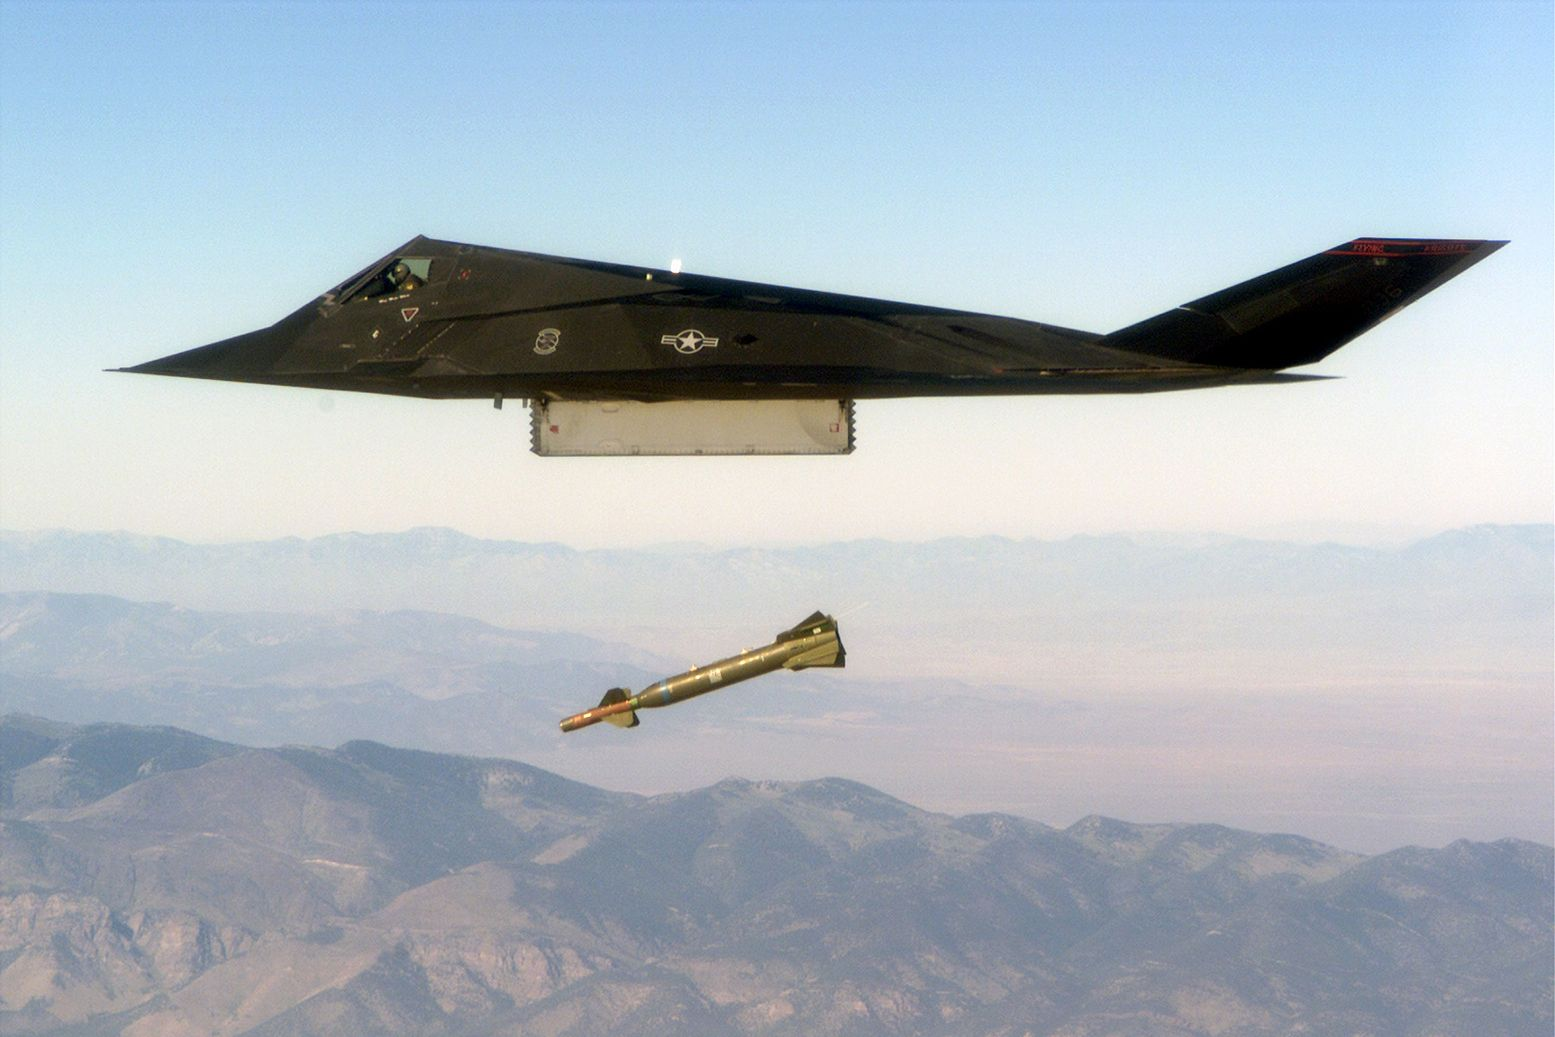 Surprise! The F-117 Nighthawk Stealth Fighter Is Back in Action | The  National Interest